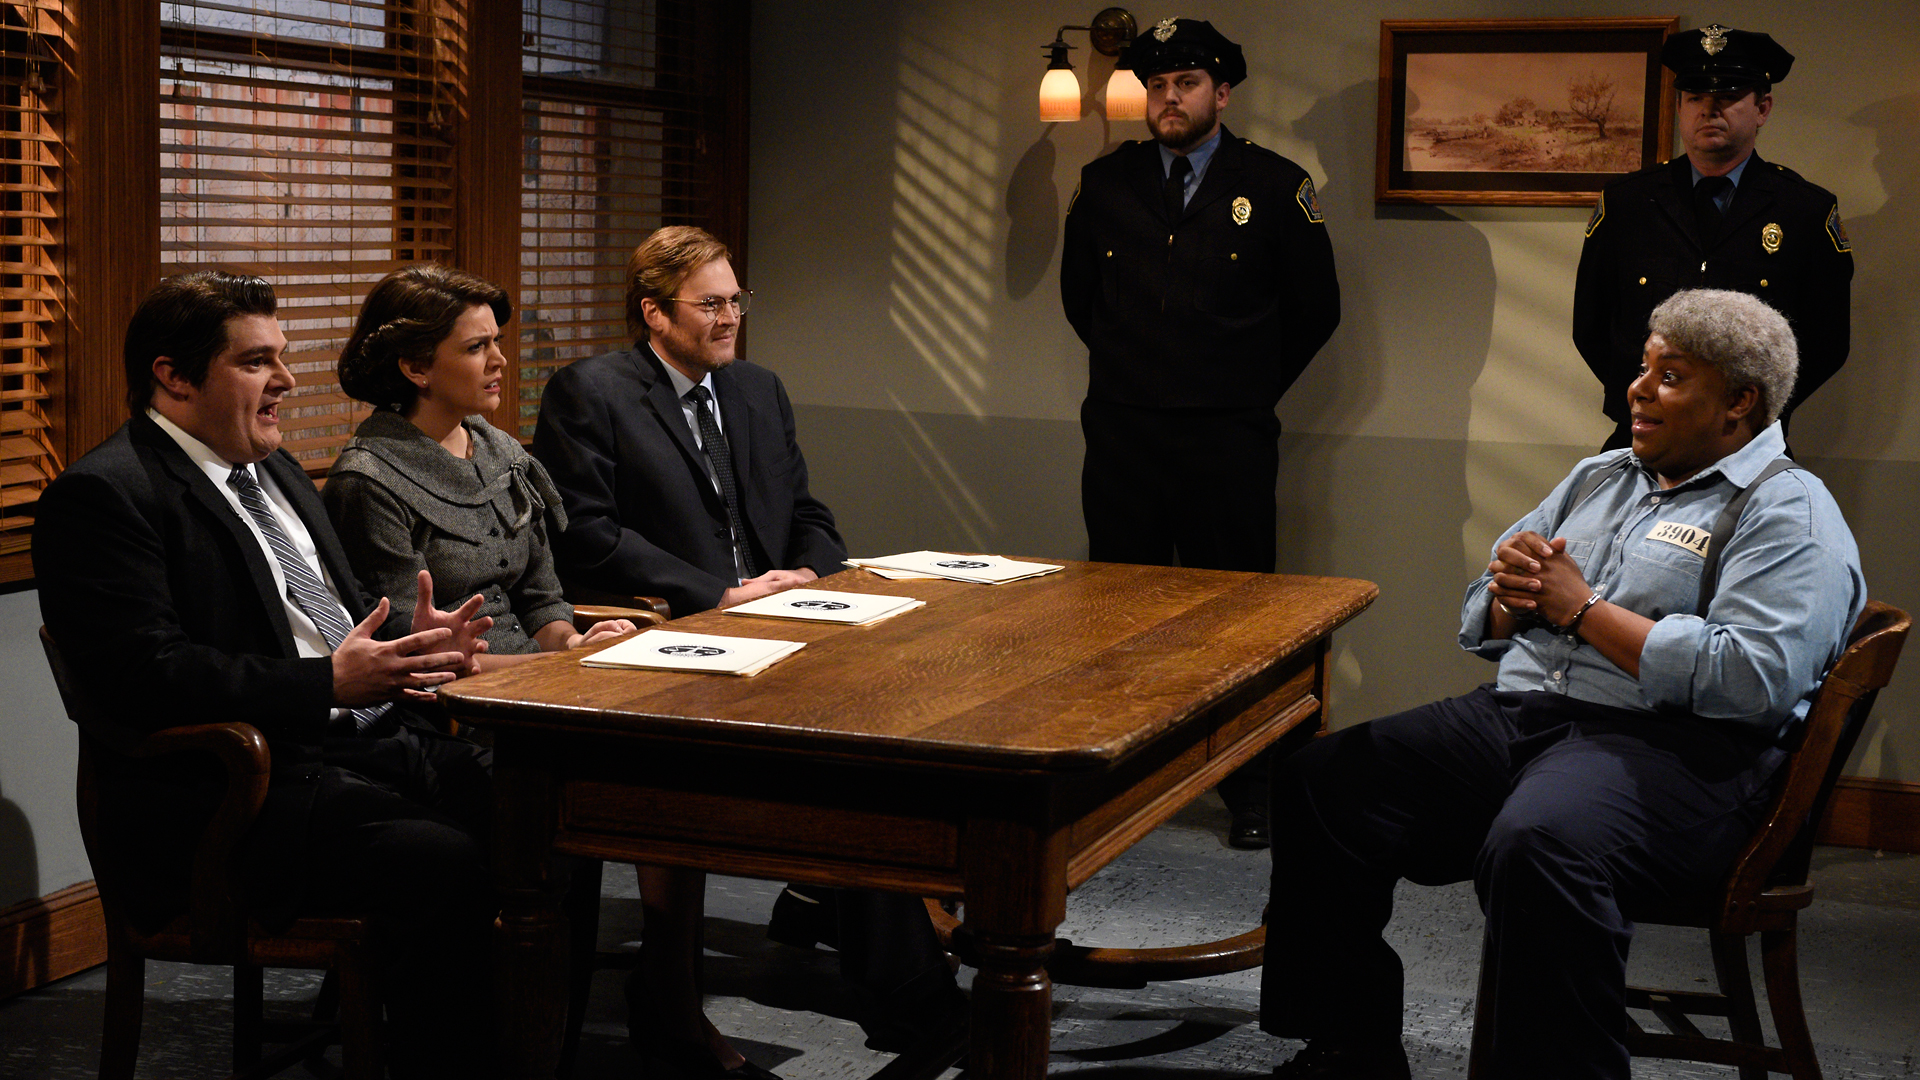 watch a cannibals parole hearing from saturday night live